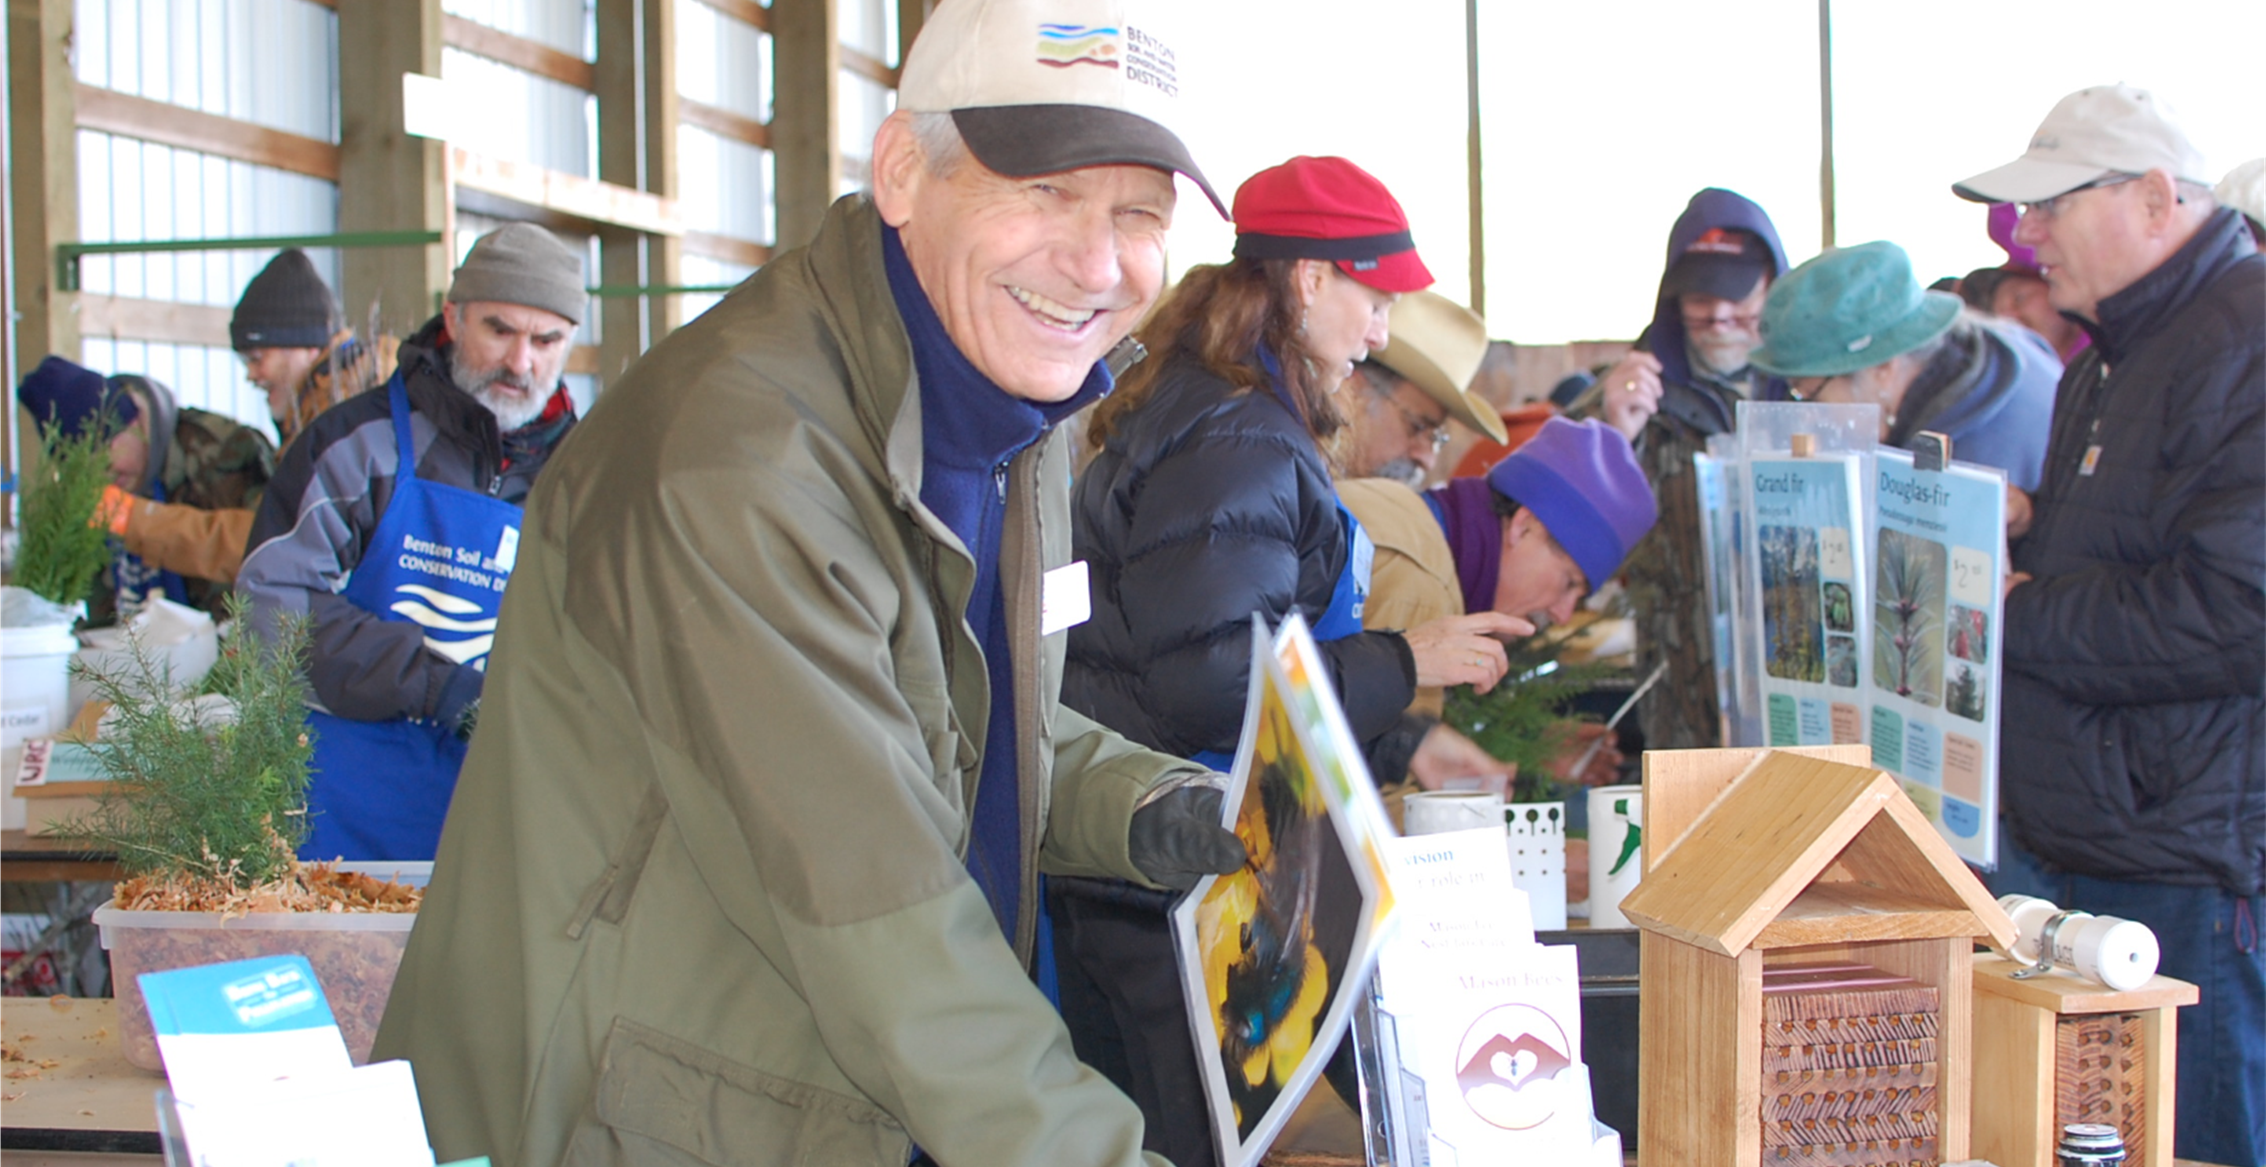 Jerry shared information at the Native Plant Sale. He has created a suite of engaging materials to help curious gardeners understand the ins and outs of mason bee husbandry.